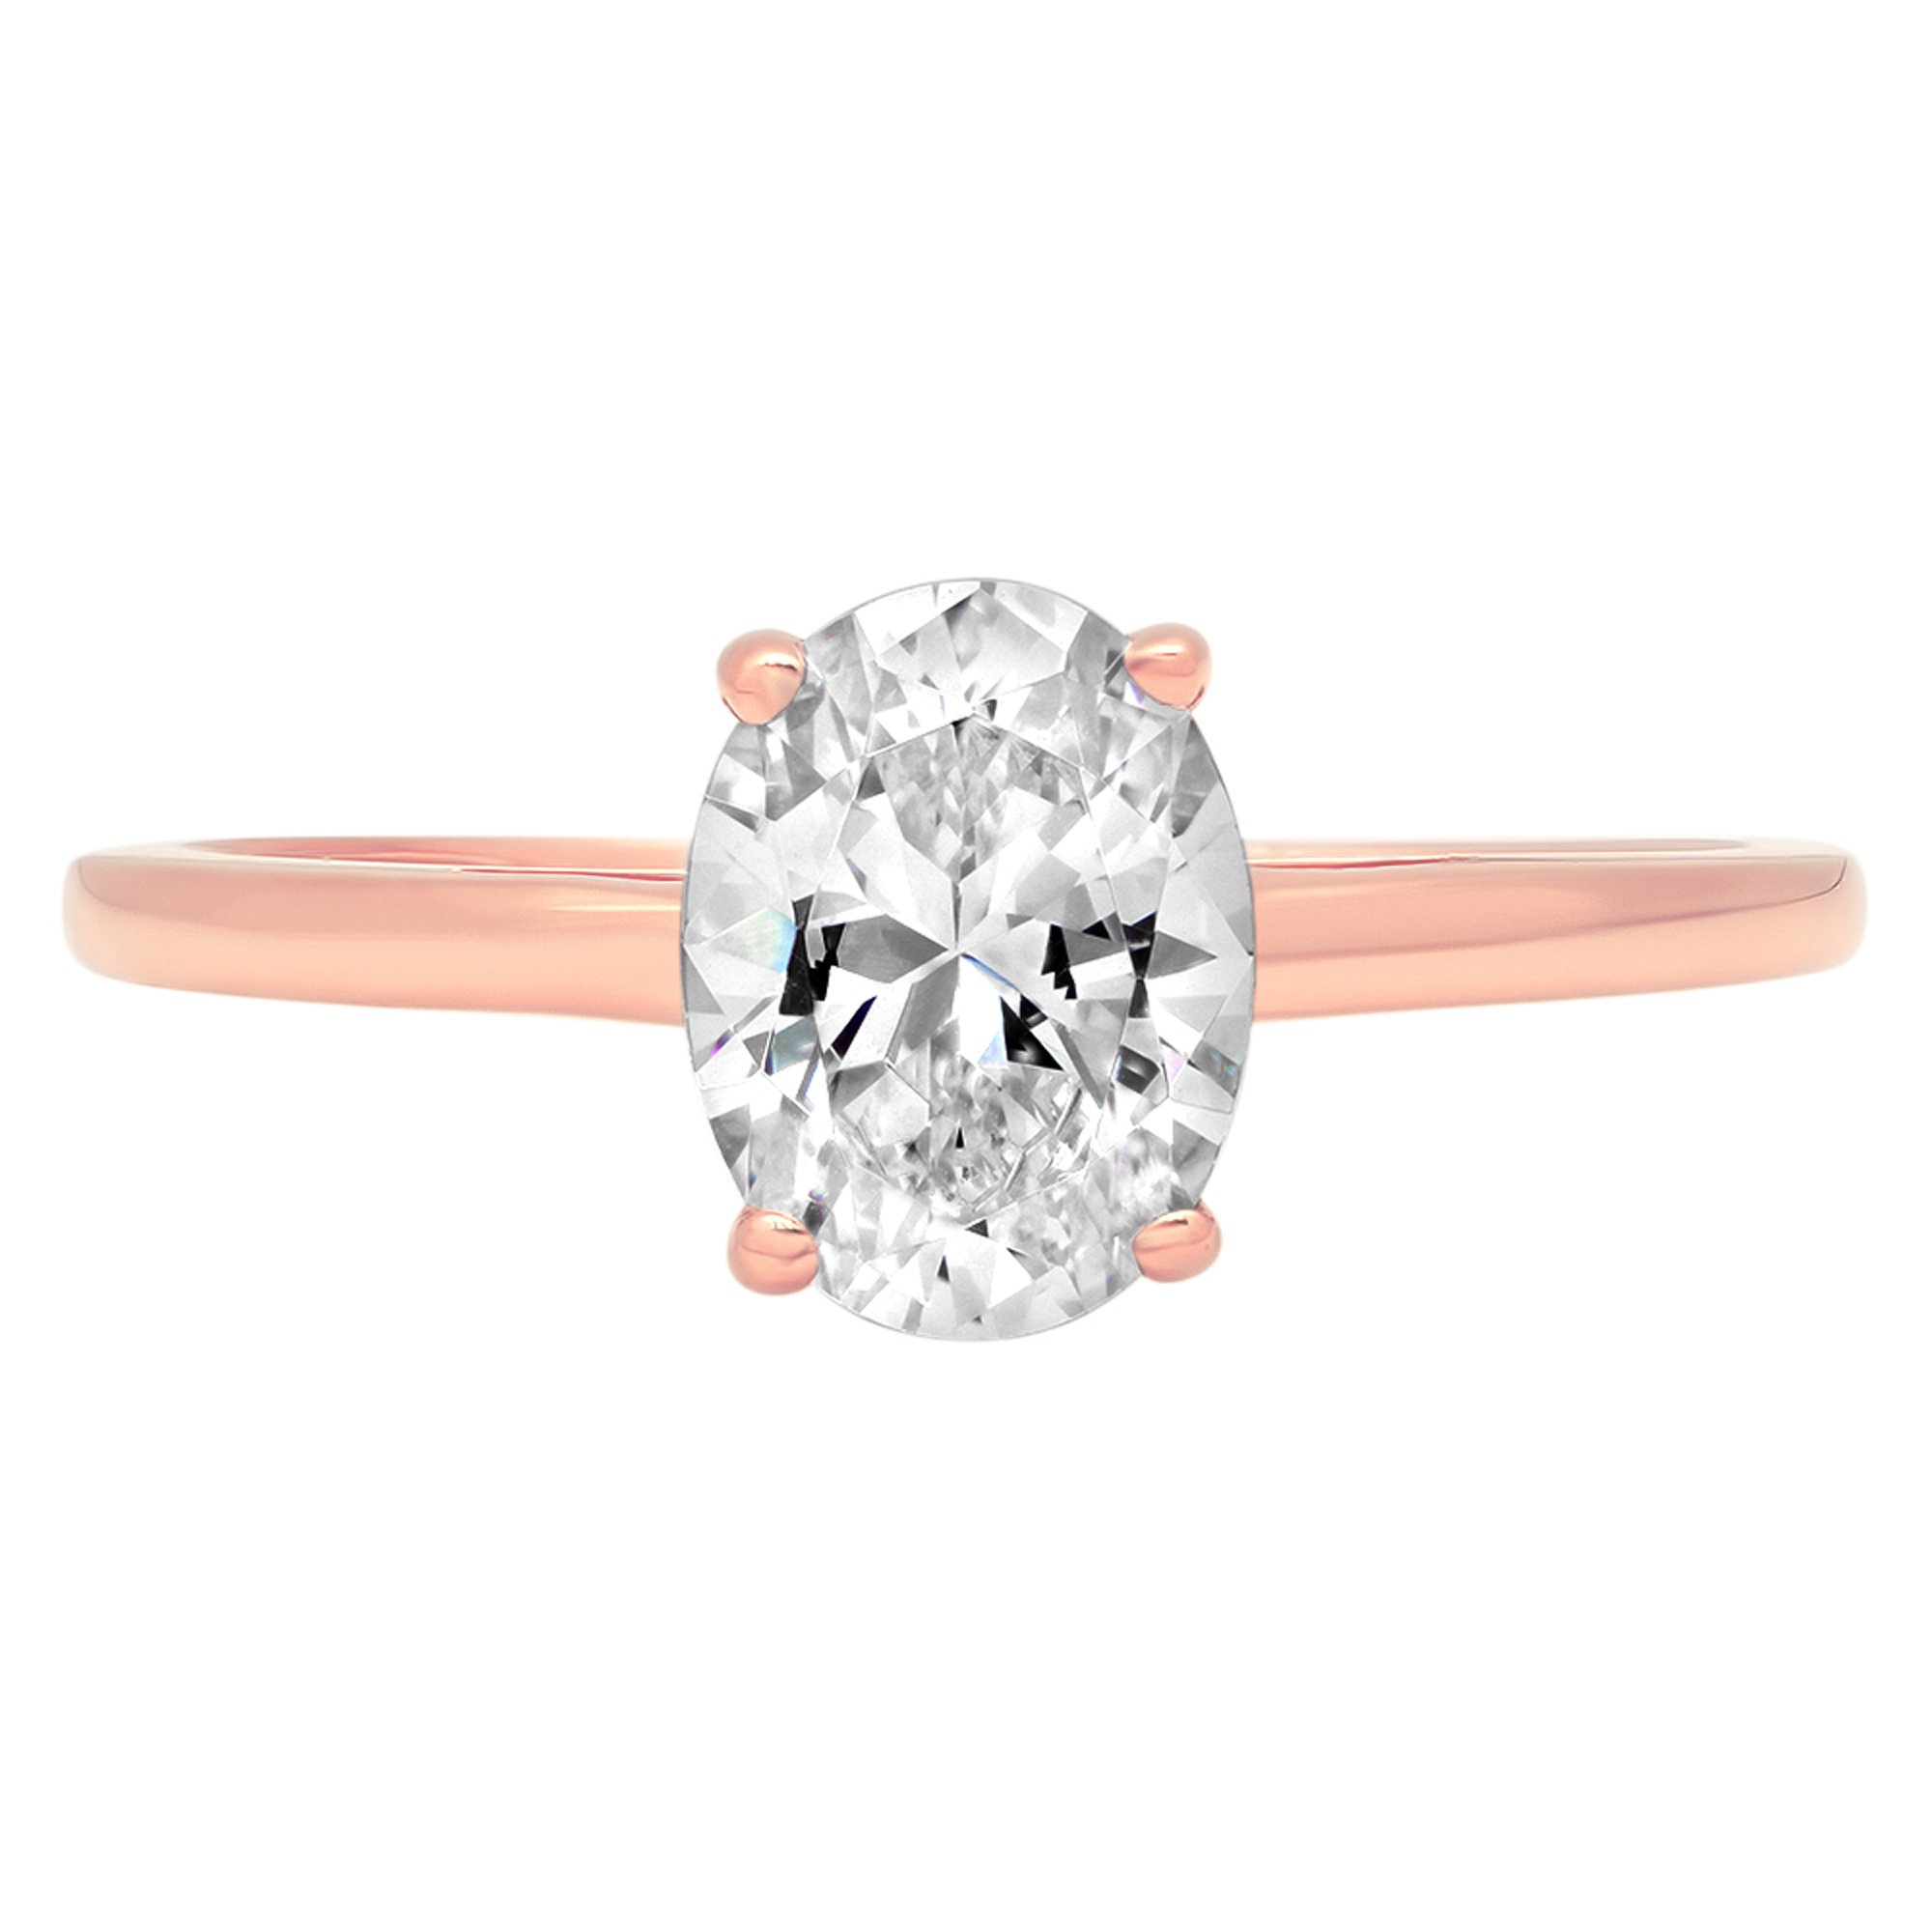 1.1ct Brilliant Oval Cut Solitaire Classic Statement Simulated Diamond Petite Ring in Solid 14k Rose Gold for Women, 8.75